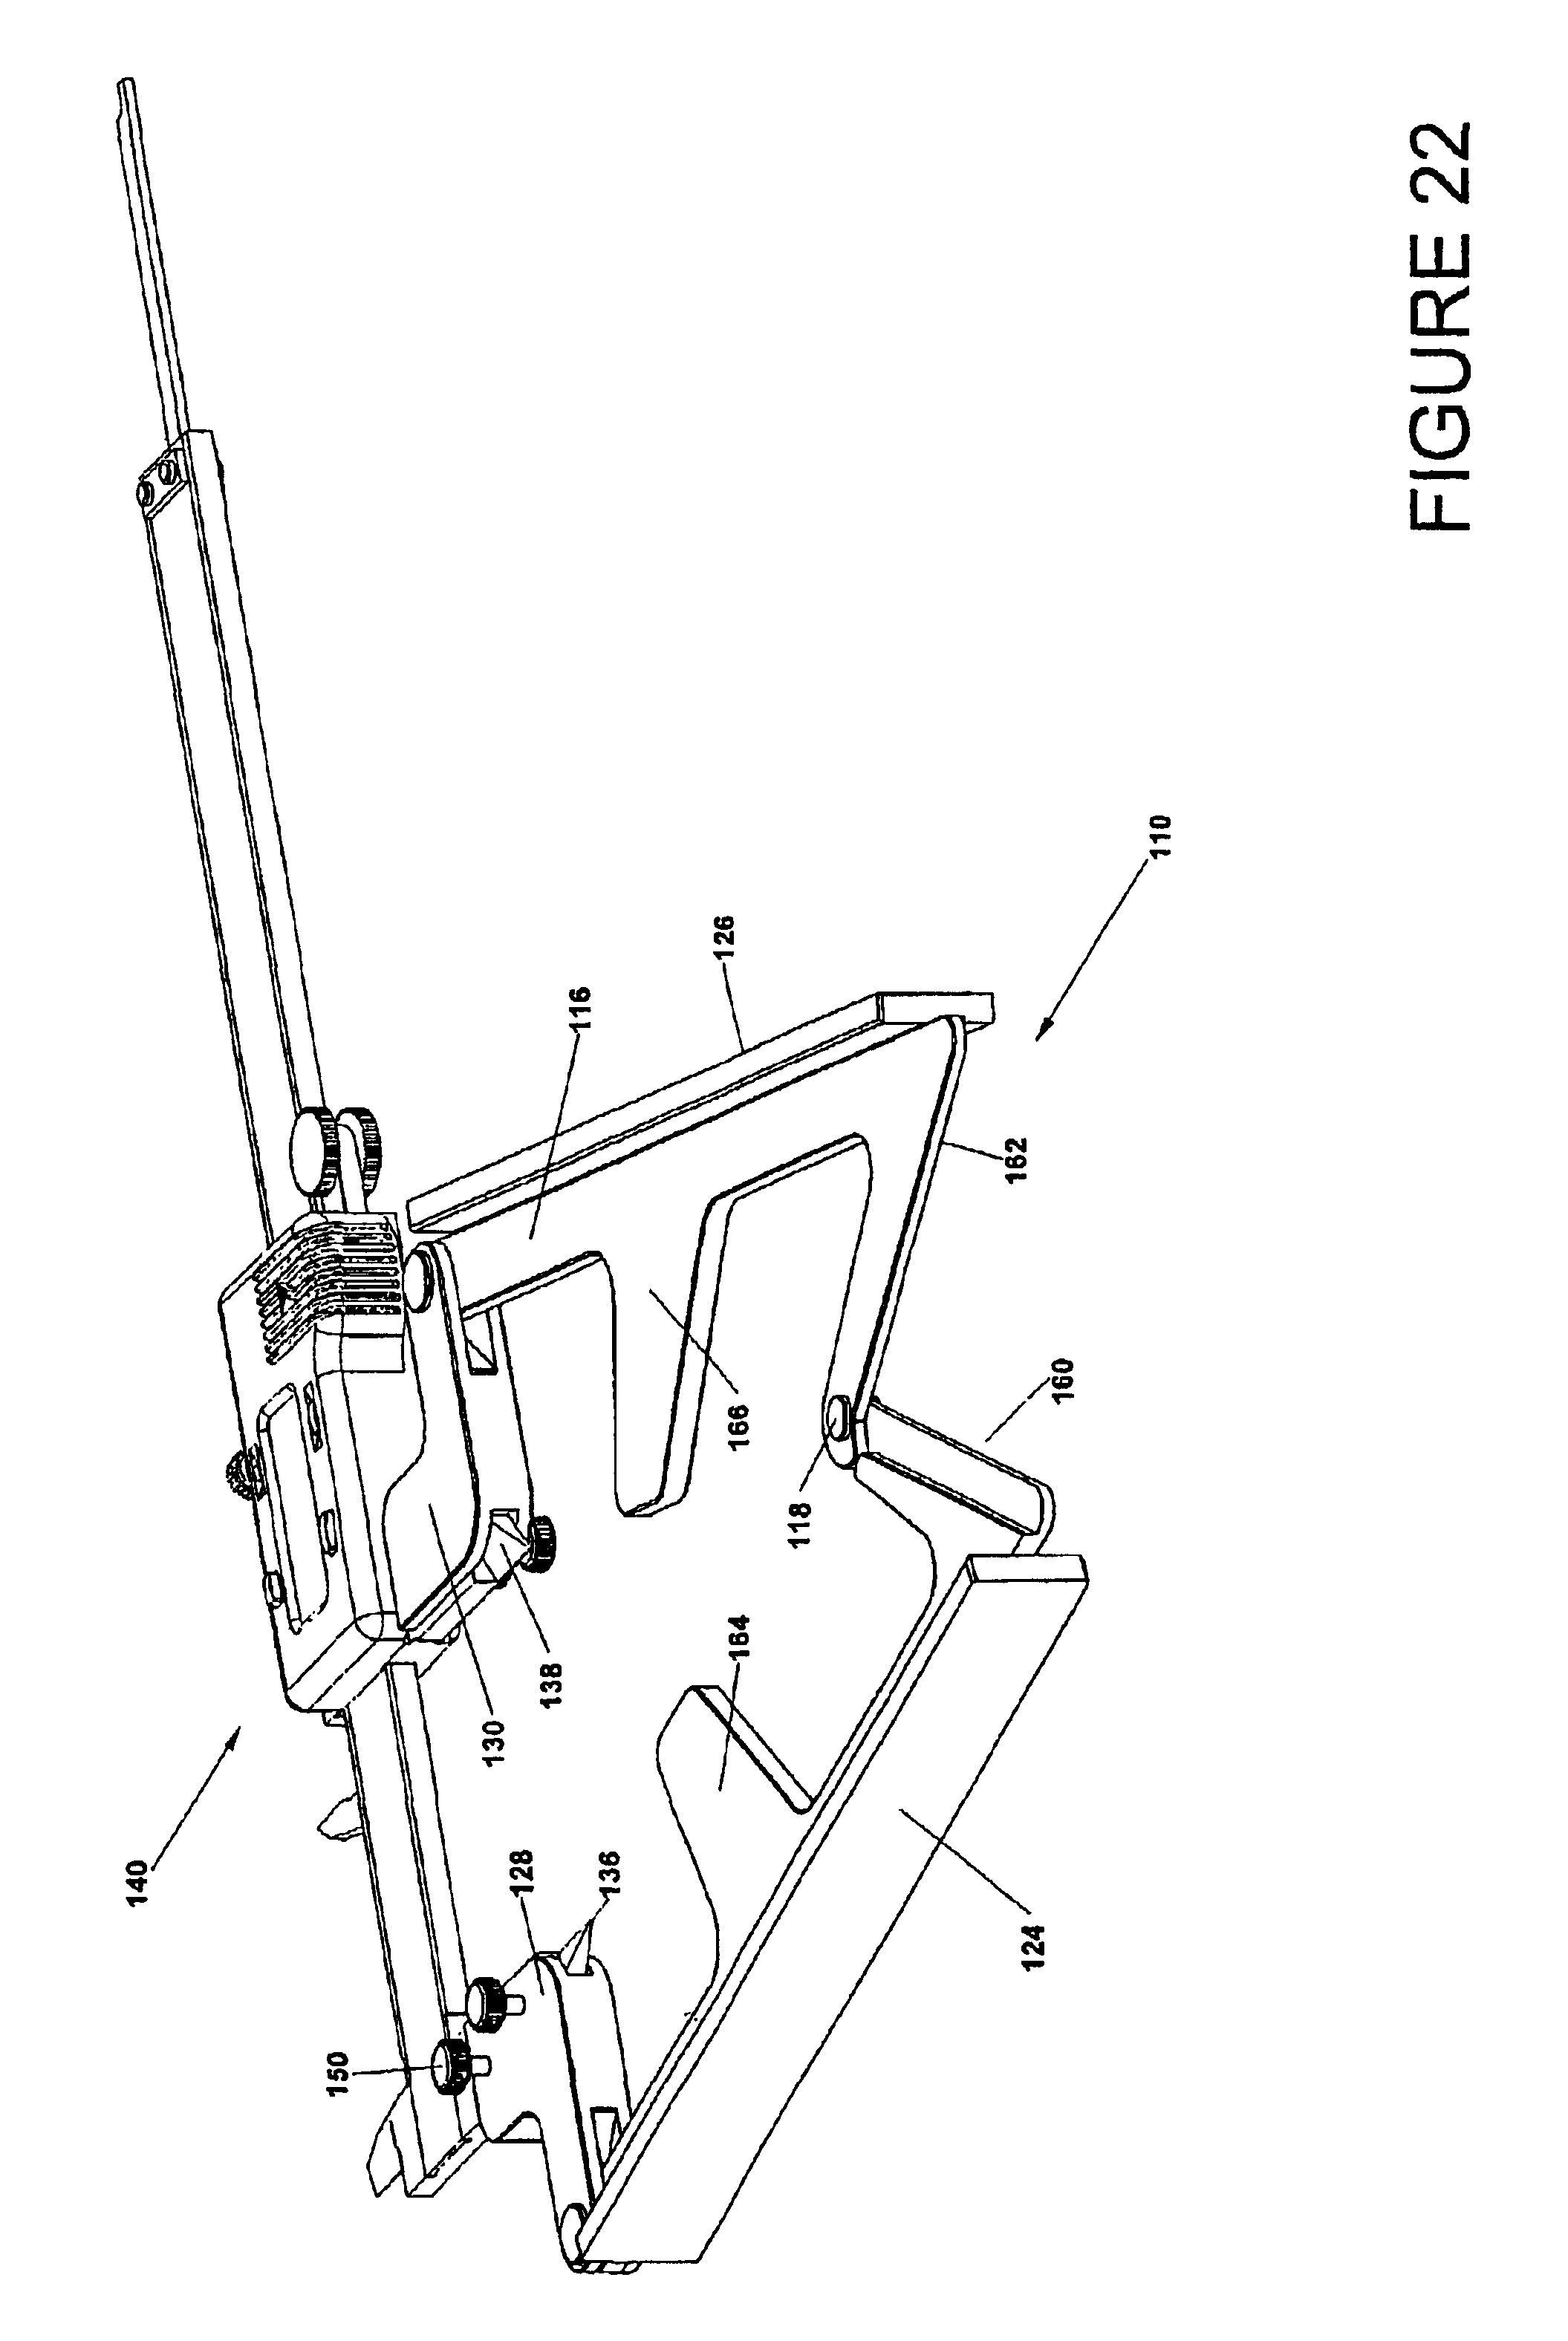 Linear Measuring Devices : Patent us tool to measure and set angles using